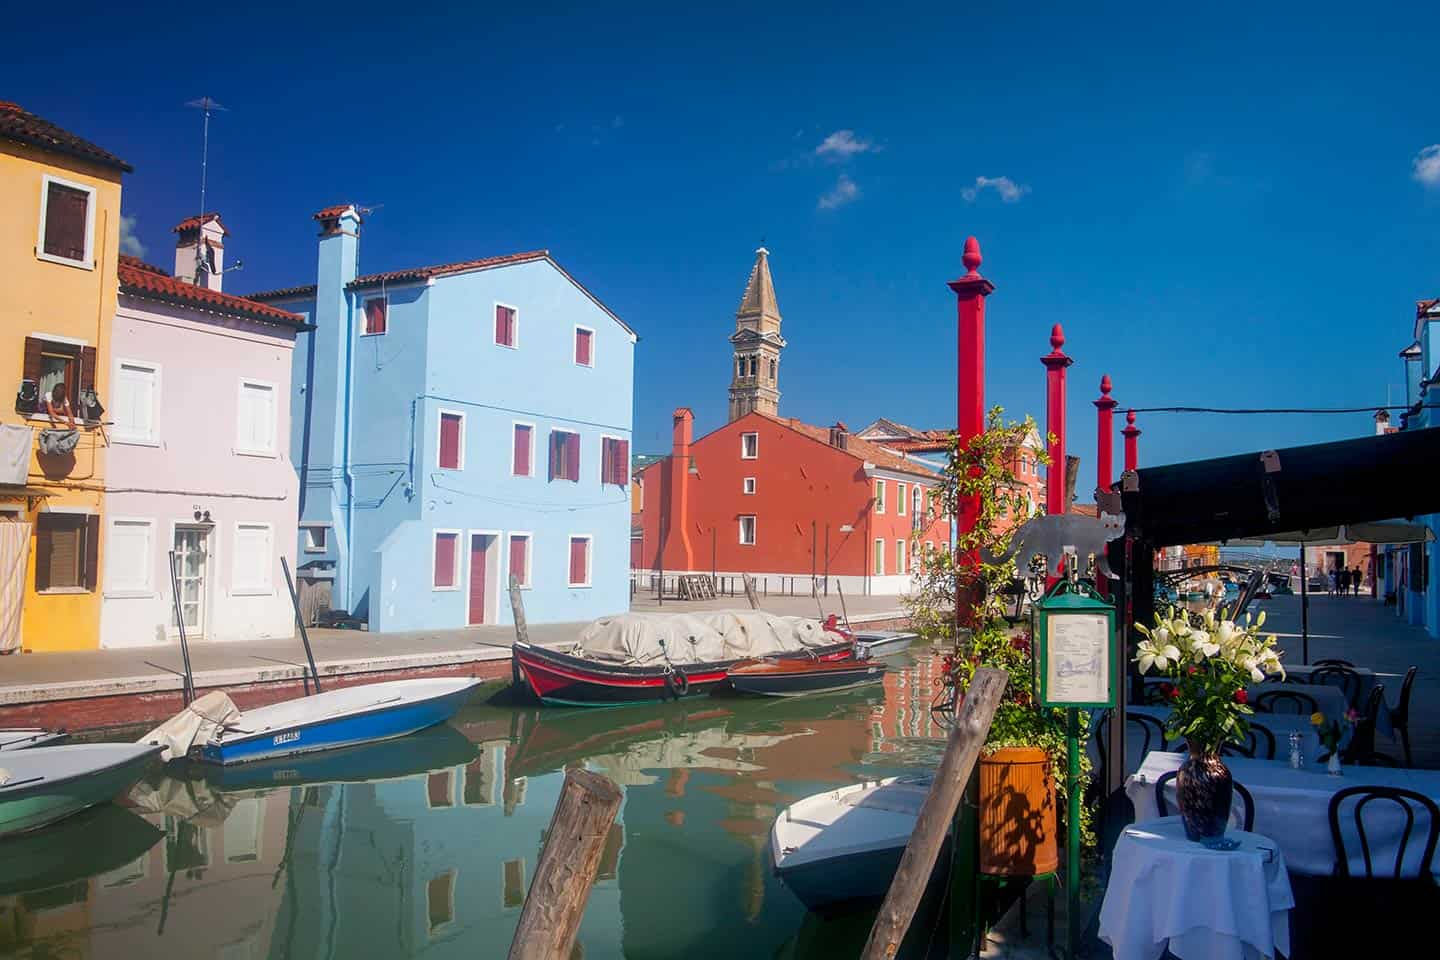 Image of restaurant and canal on island of Burano